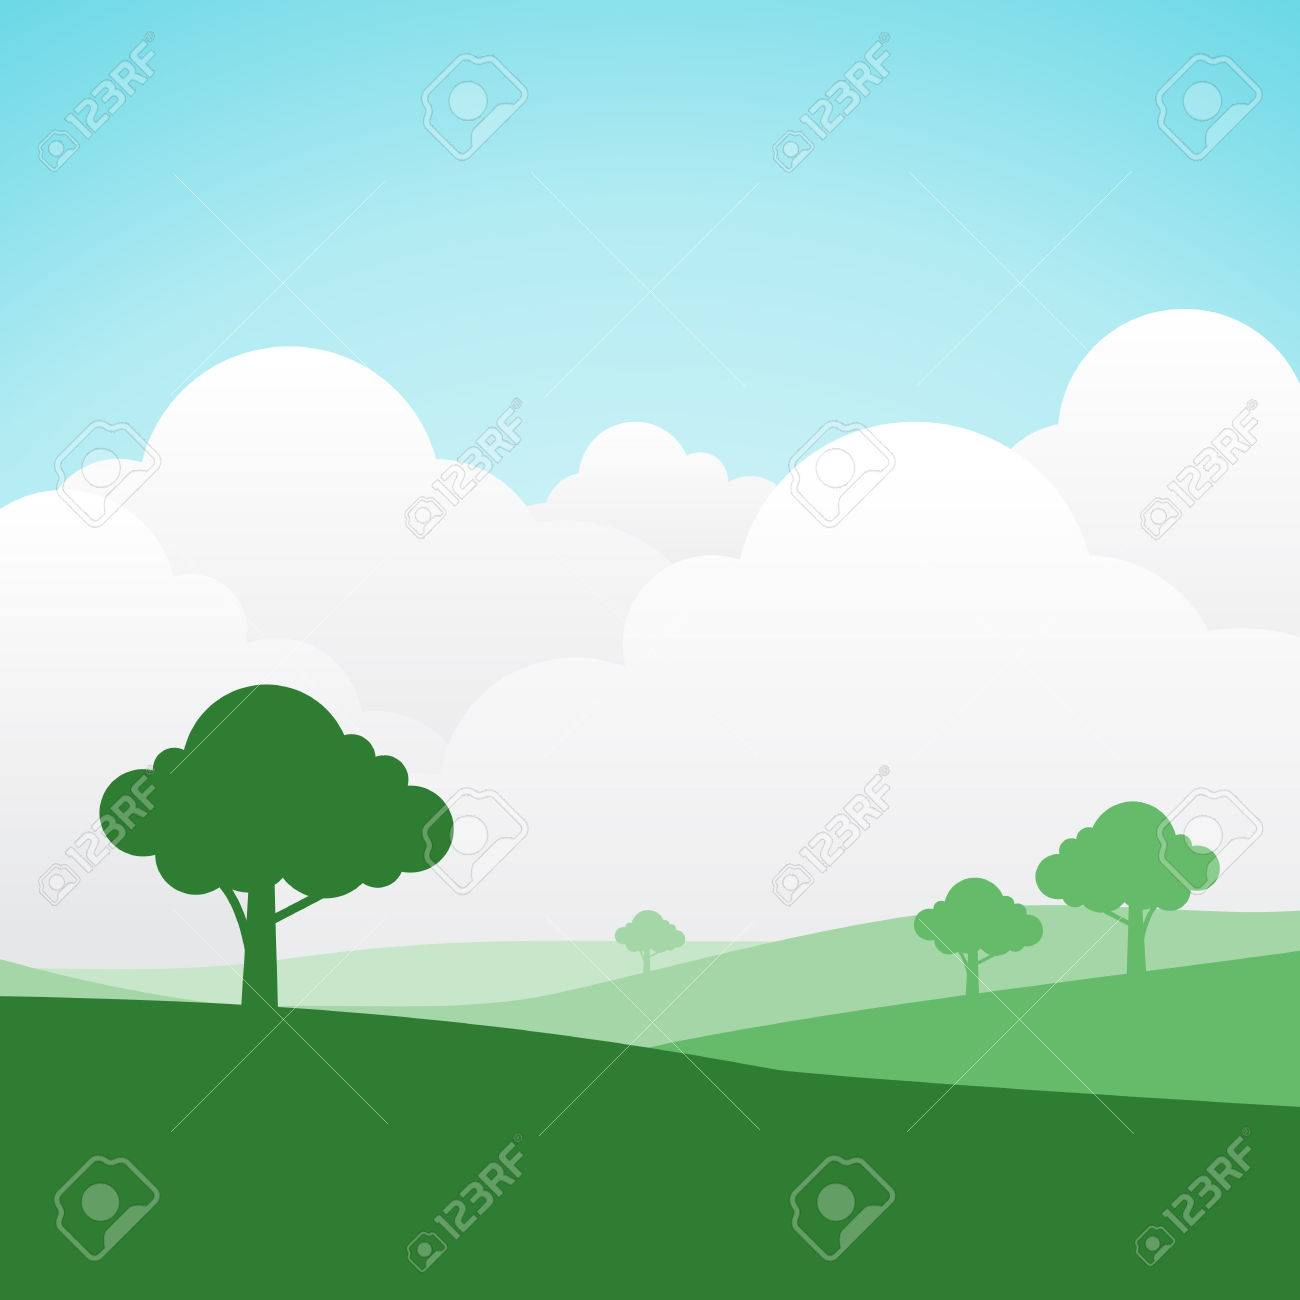 simple and colorful silhouette summer landscape background for rh 123rf com